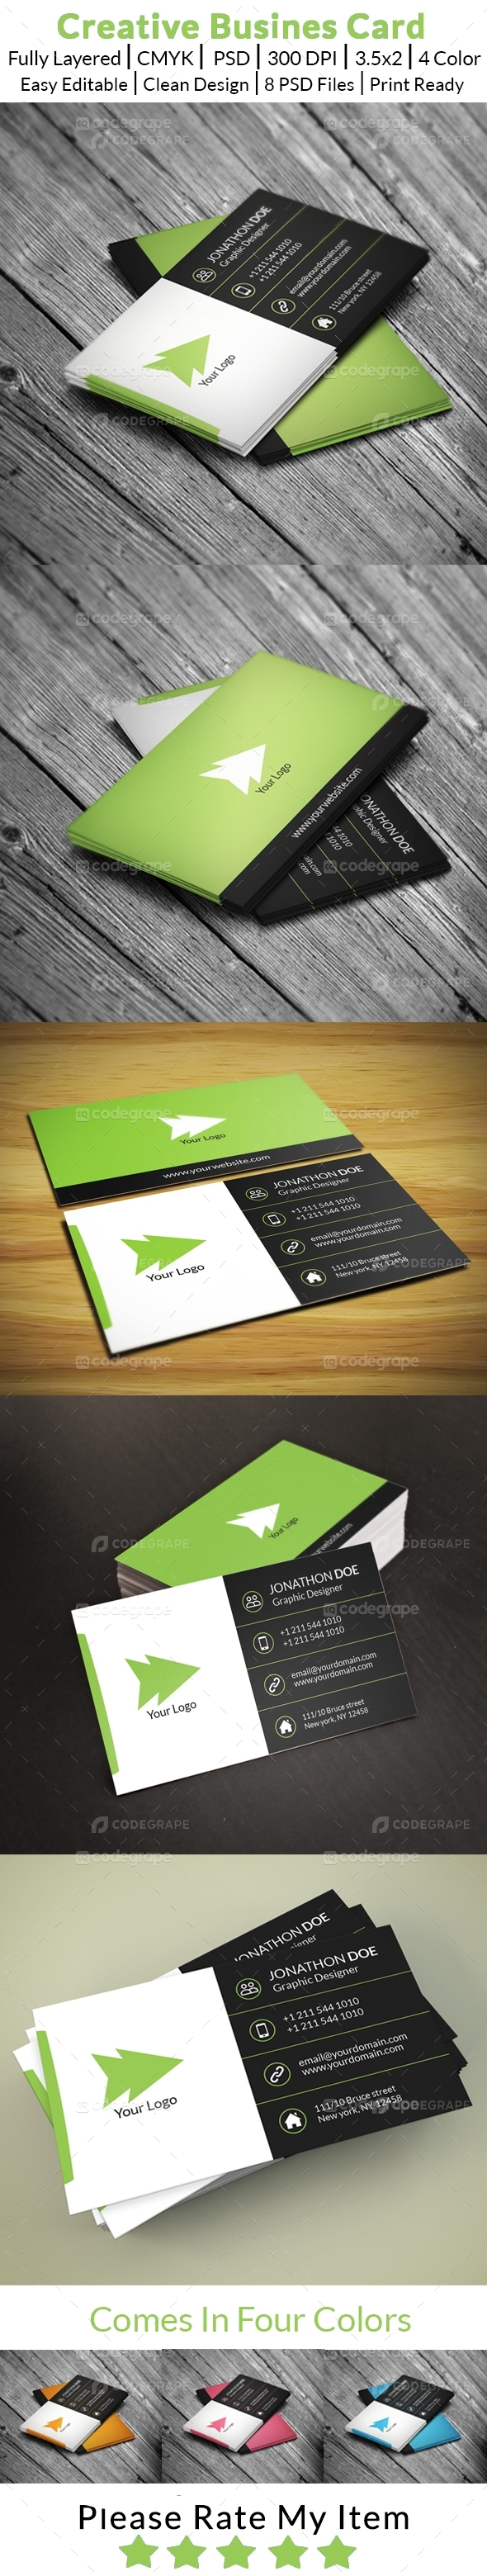 Creative Busines Card (Four Color Versions)